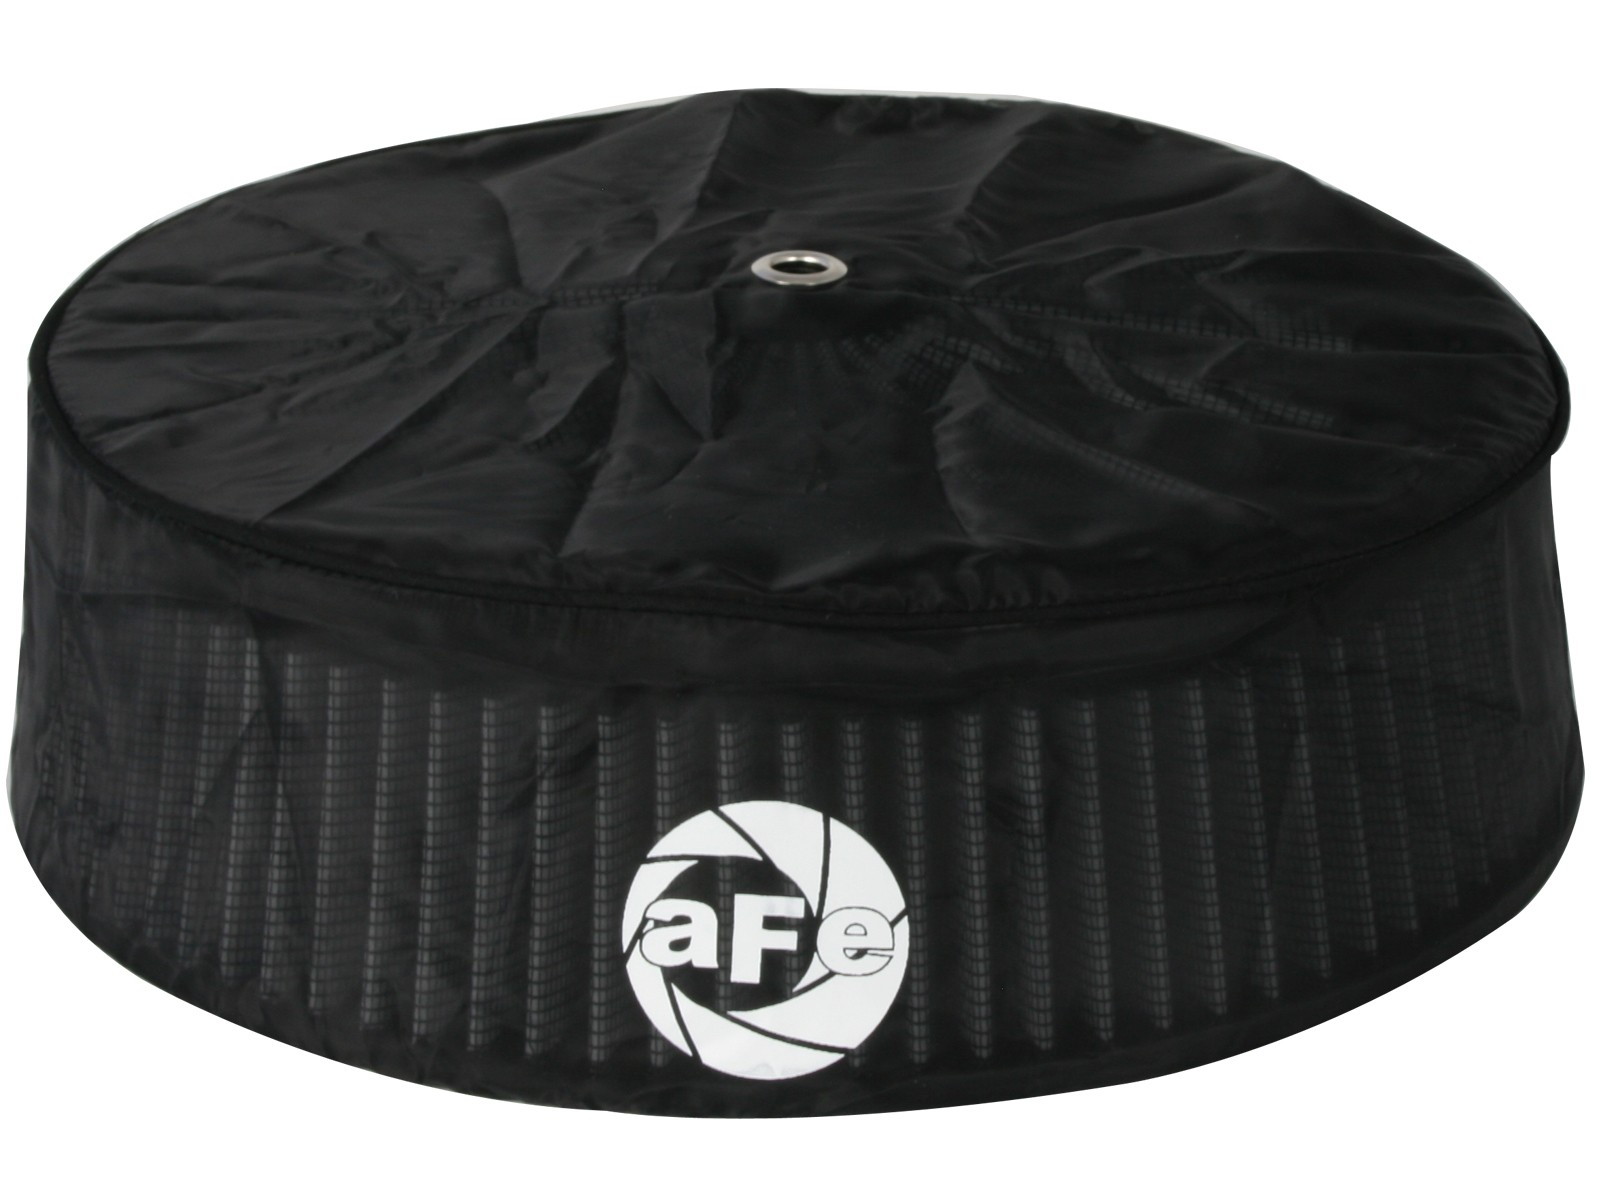 aFe POWER 28-10183 Magnum SHIELD Pre-Filters